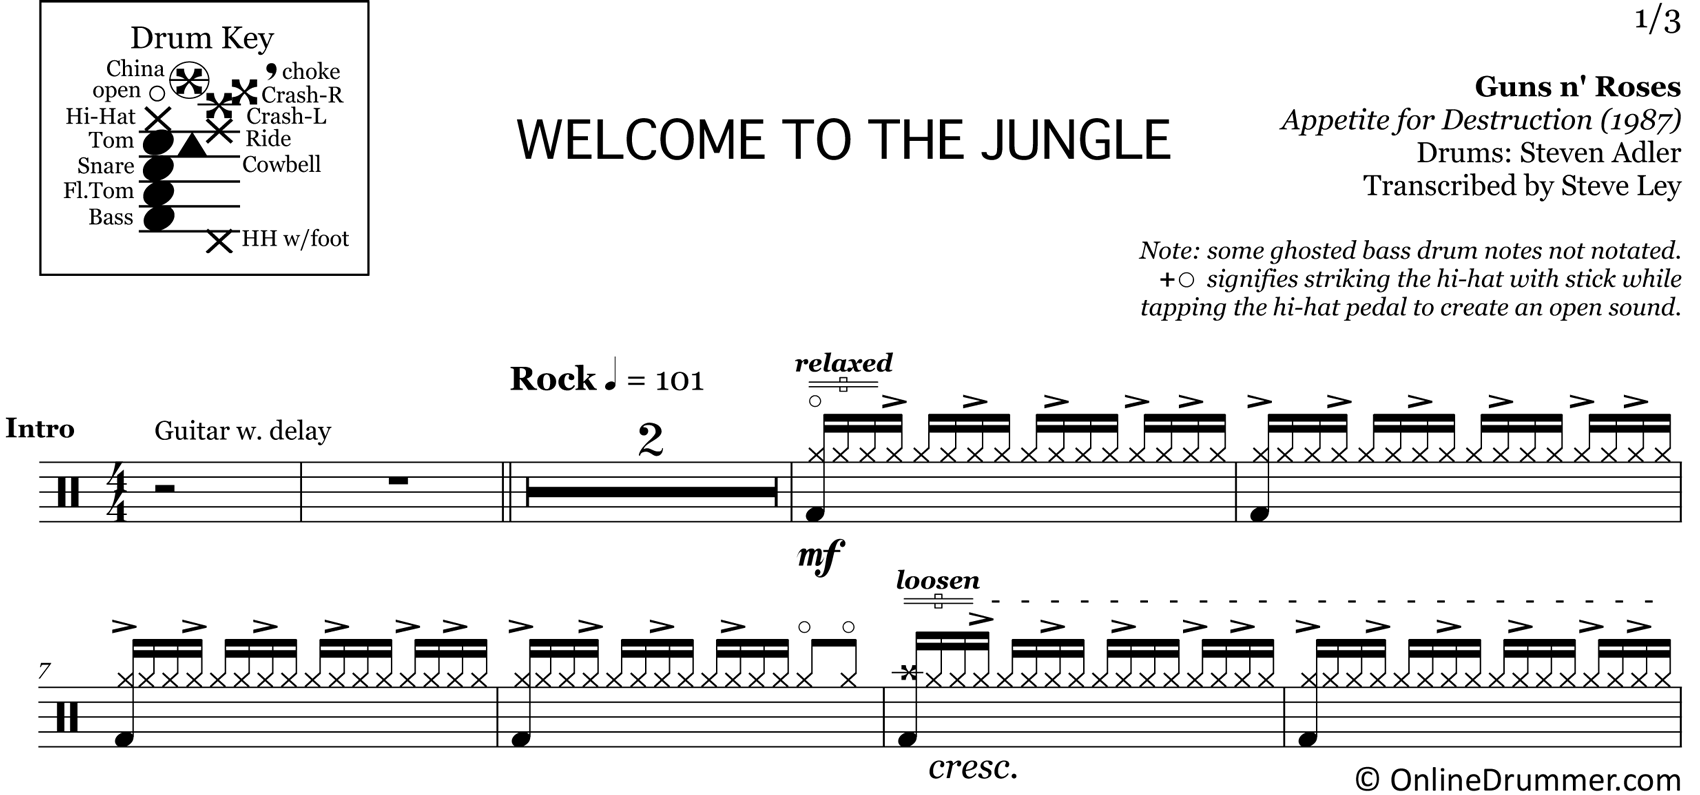 Welcome to the Jungle - Guns N Roses - Drum Sheet Music